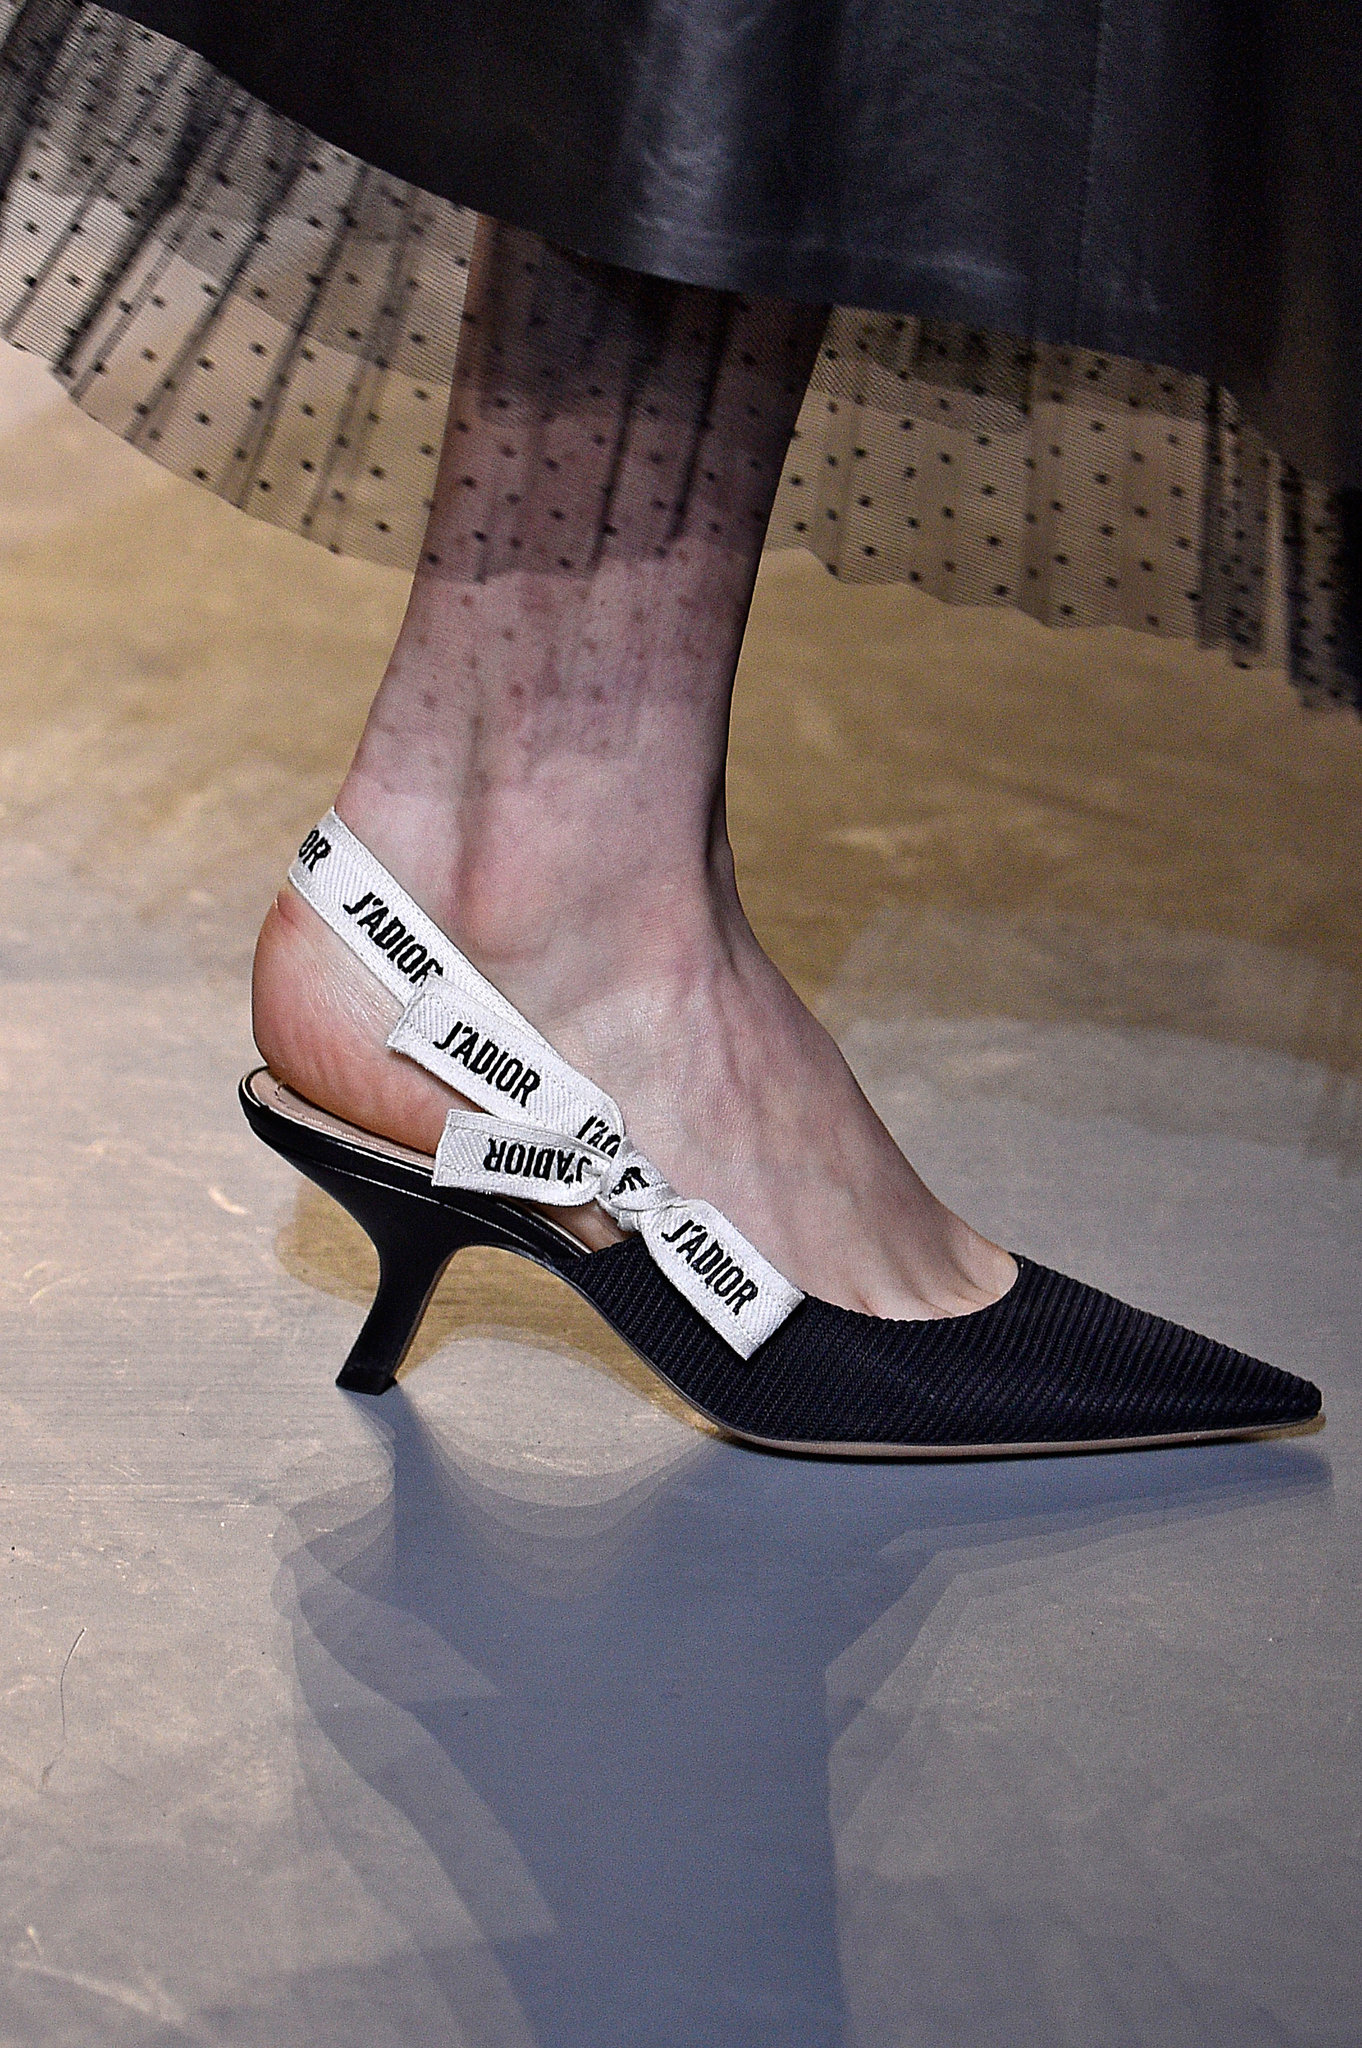 High Street Version Of The Dior Sling Back Kitten Heels